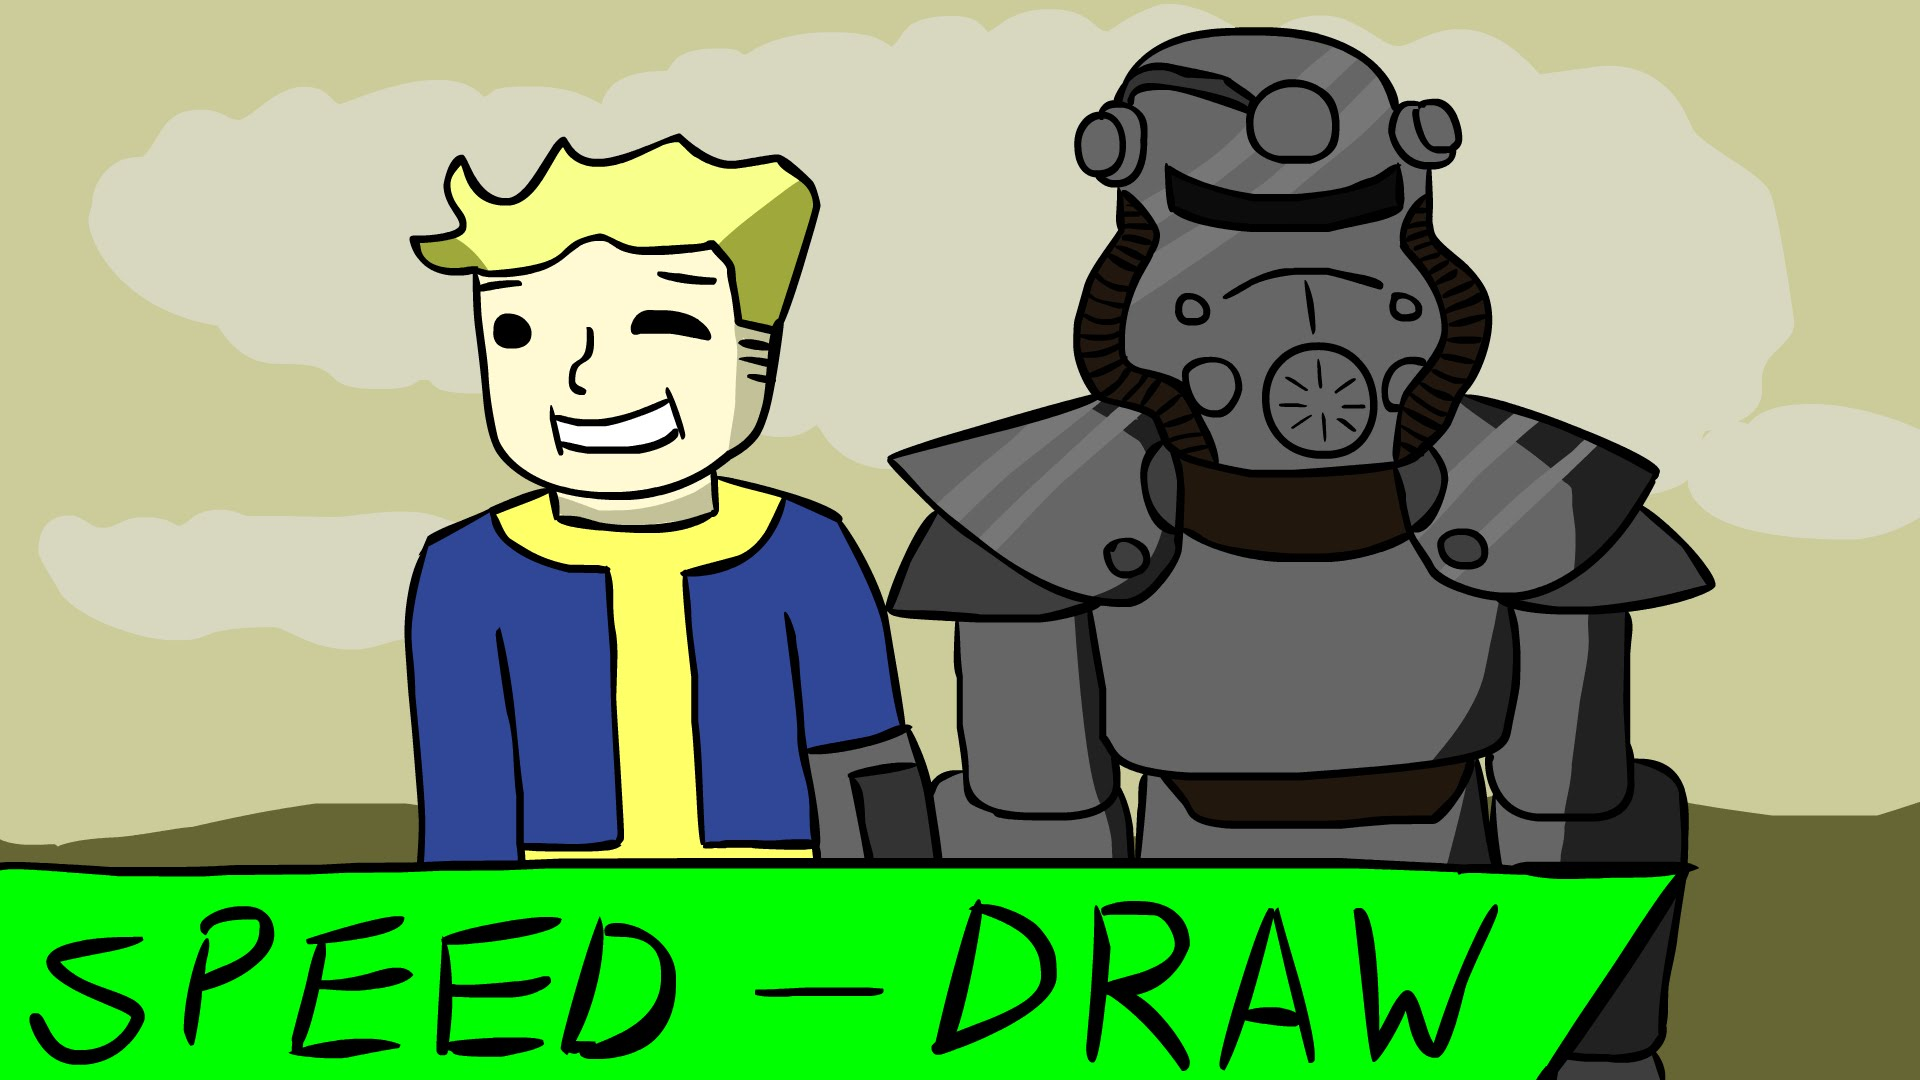 Vault boy clipart jpg black and white library Speed Art] Vault Boy and Power Armor (Fallout) - YouTube jpg black and white library